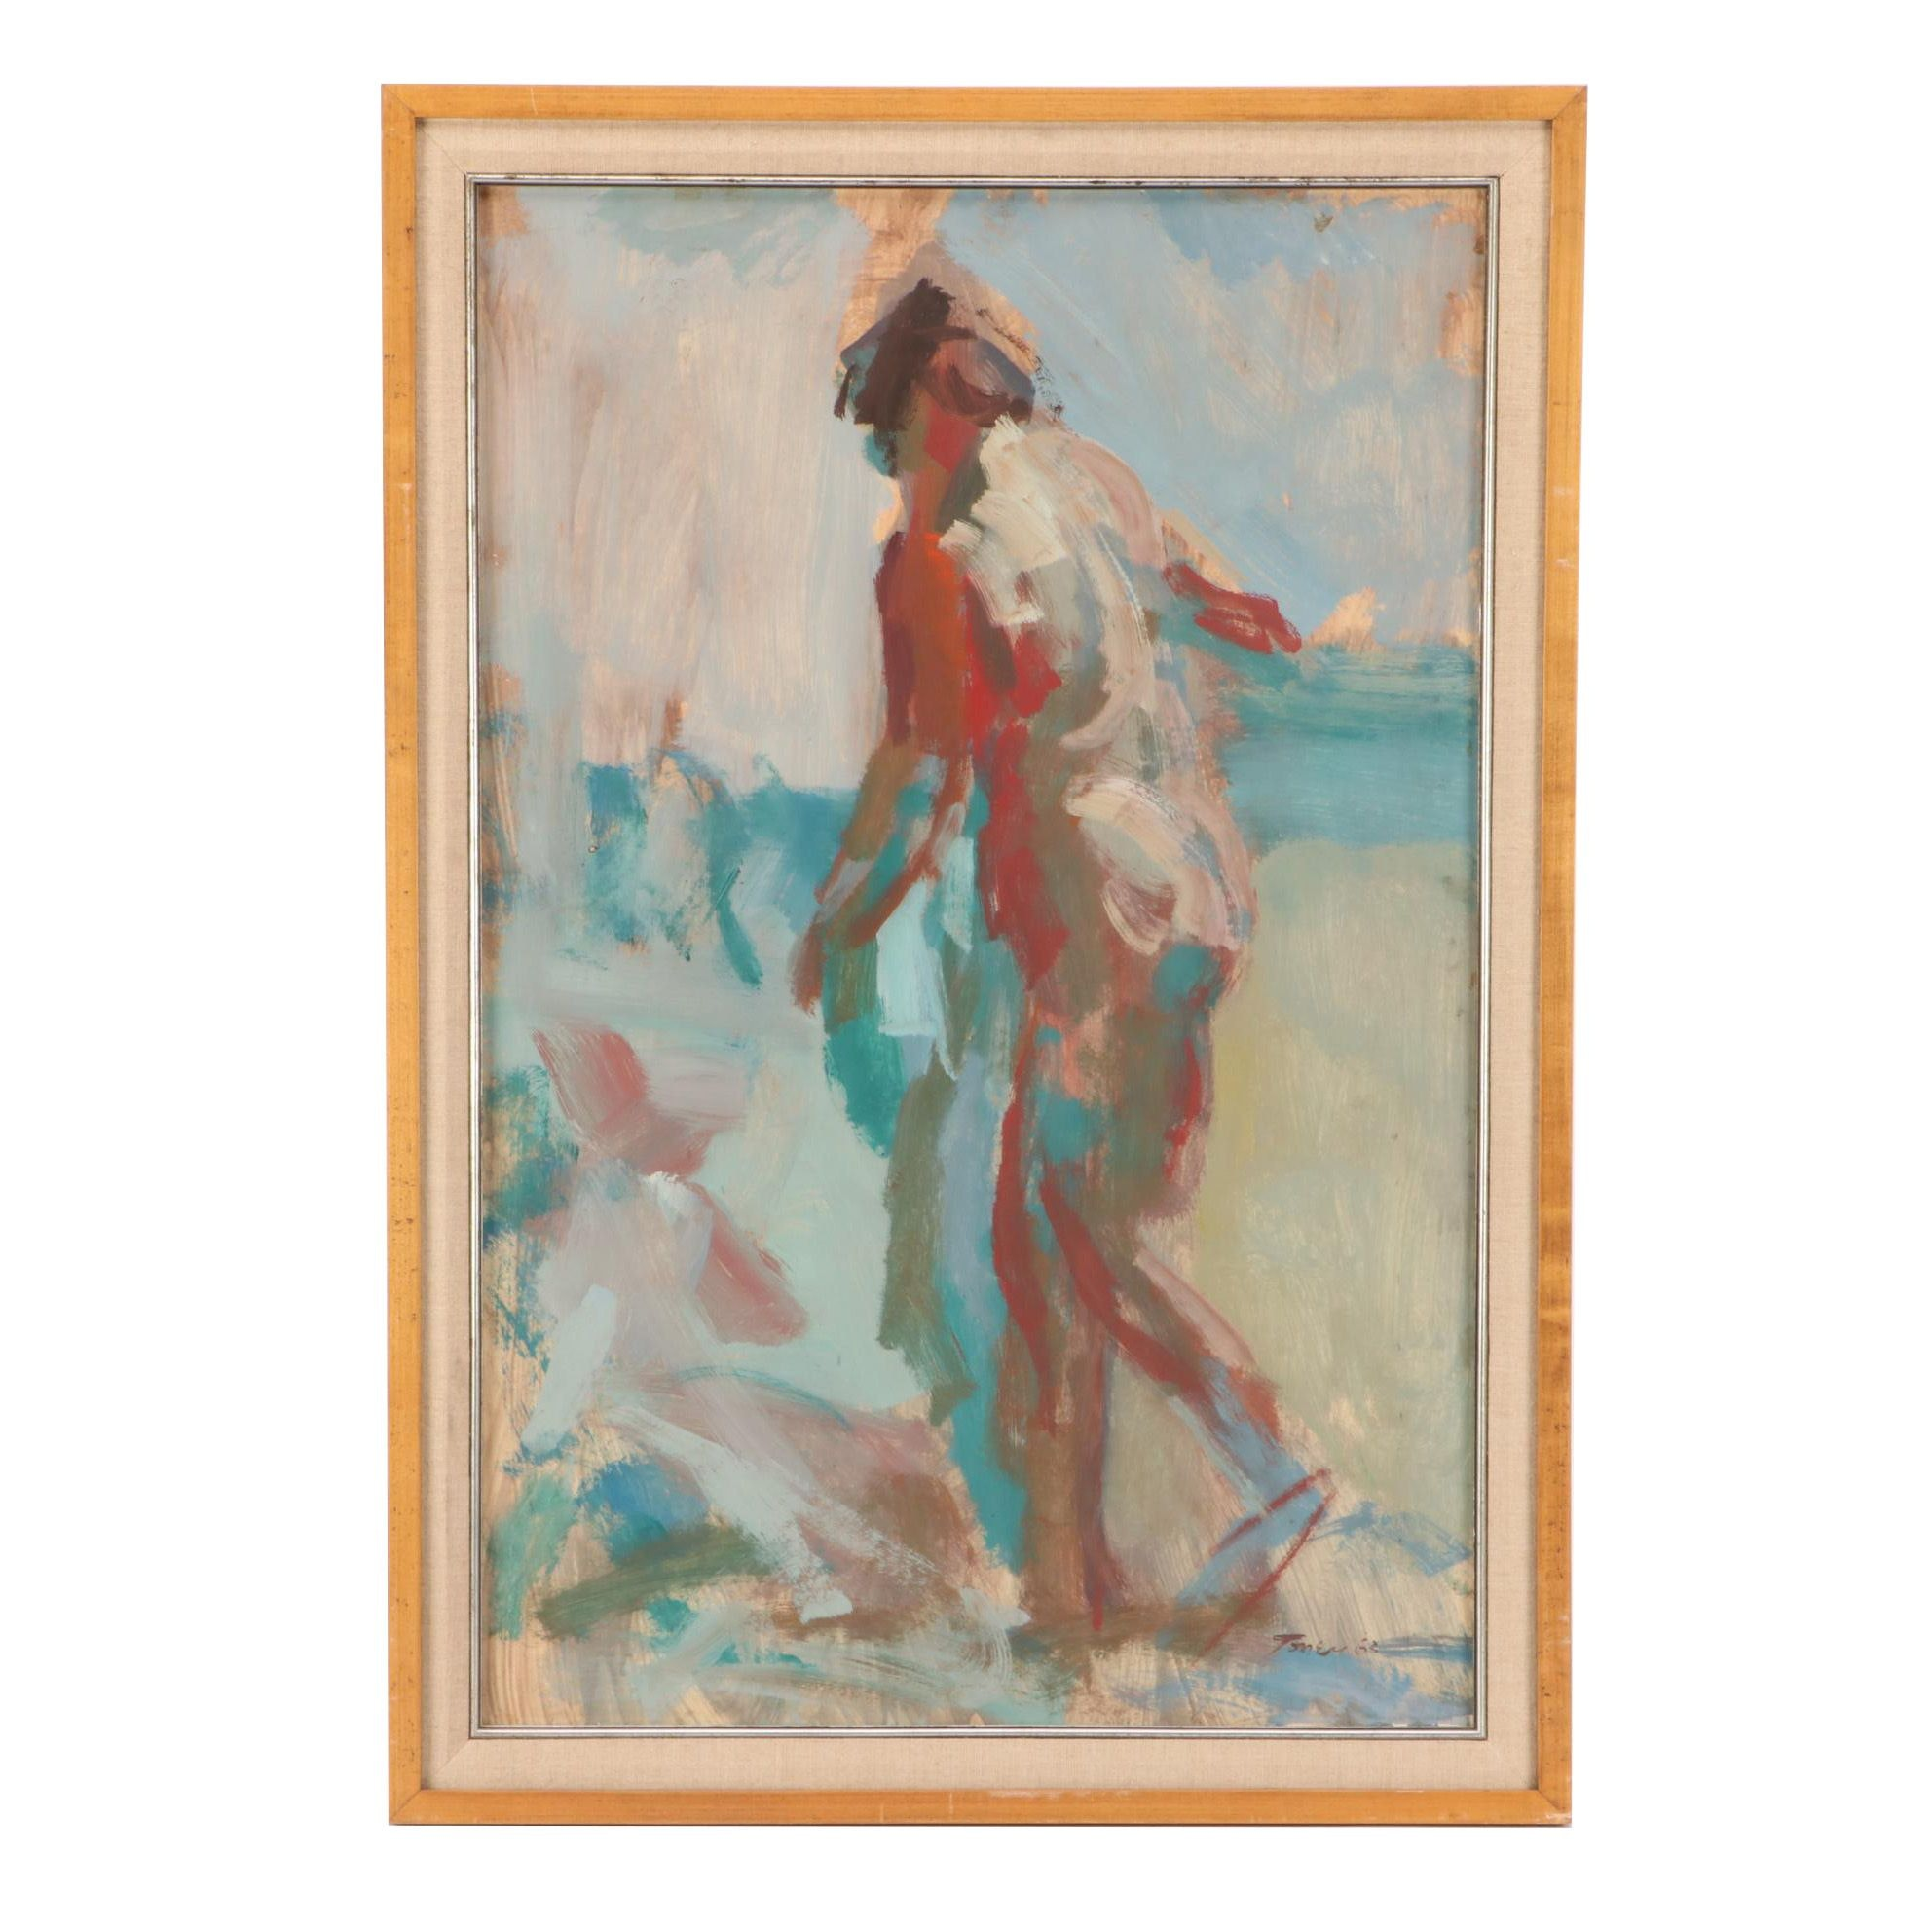 Anthony Toney 1963 Abstract Figure Oil Painting